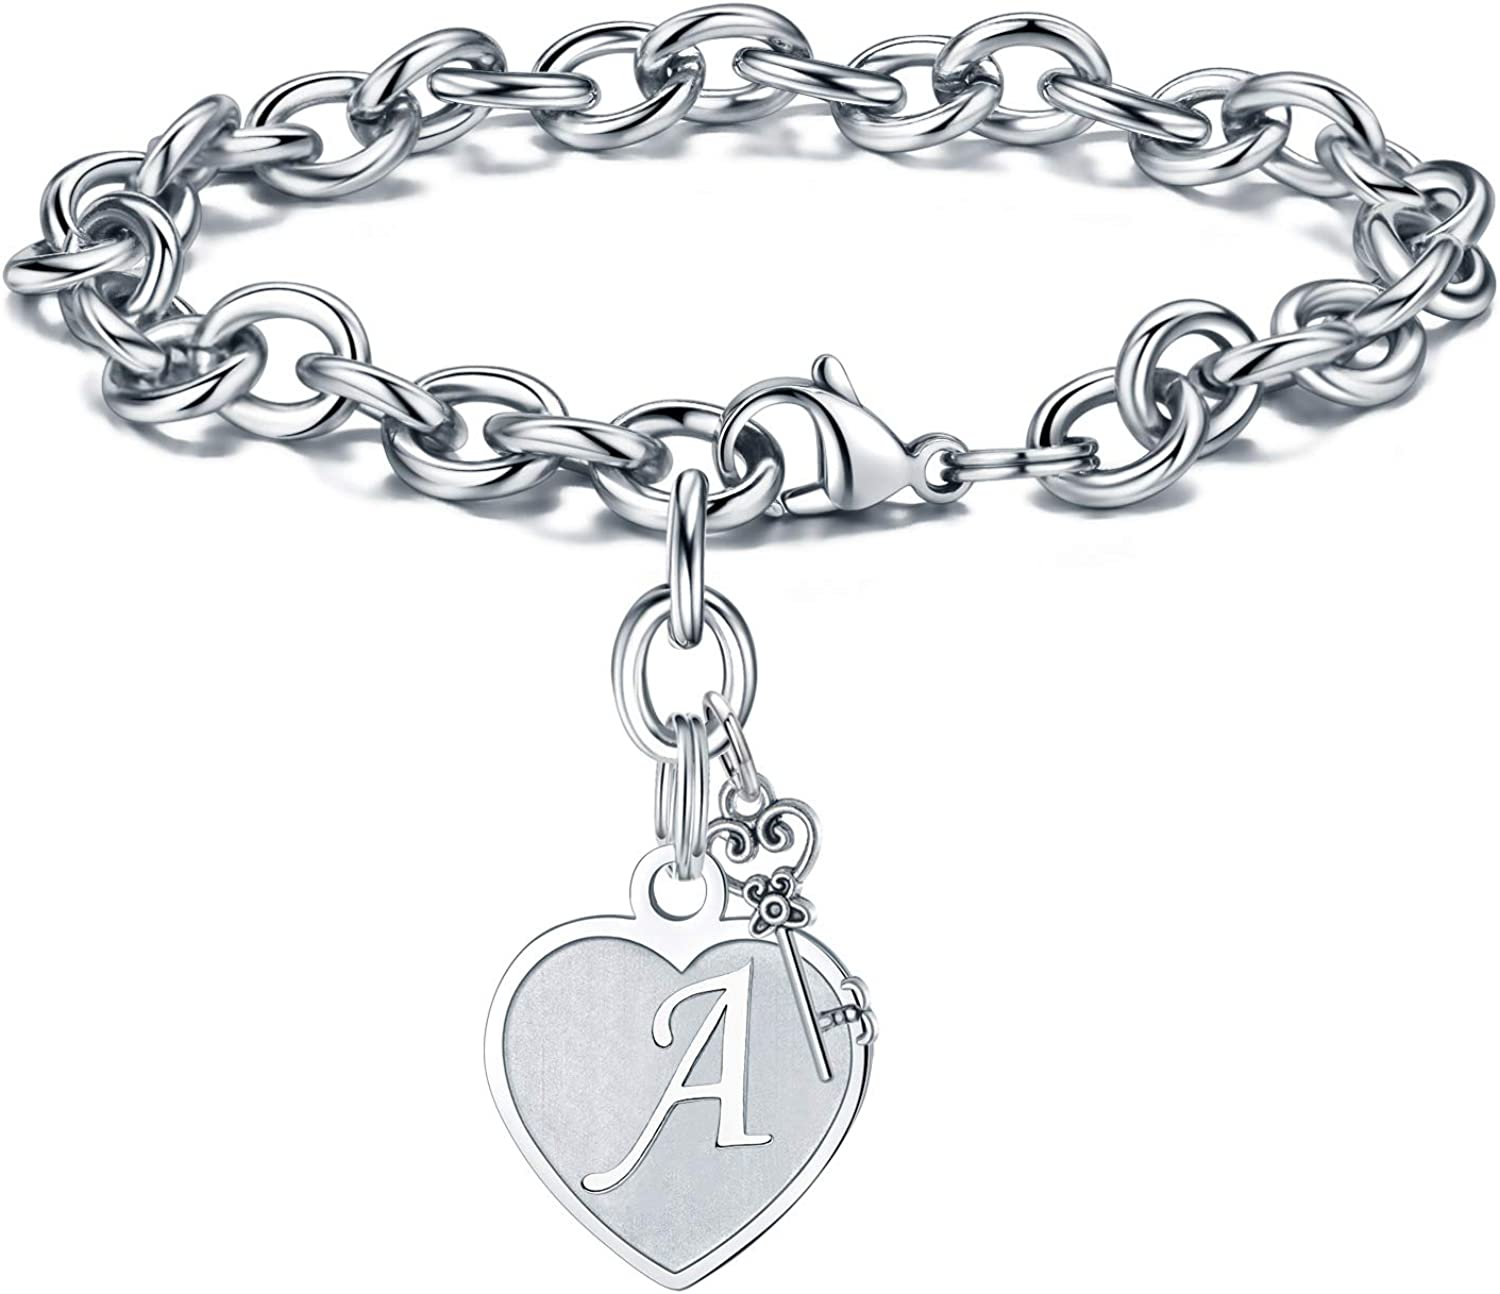 Amazon.com: Initial Charm Bracelet for Women - Engraved Letter A Initial Bracelet Womens Stainless Steel Heart Letter Charm Bracelet Adjustable Birthday Christmas Valentines Gifts for Her Women Teen Girls: Jewelry